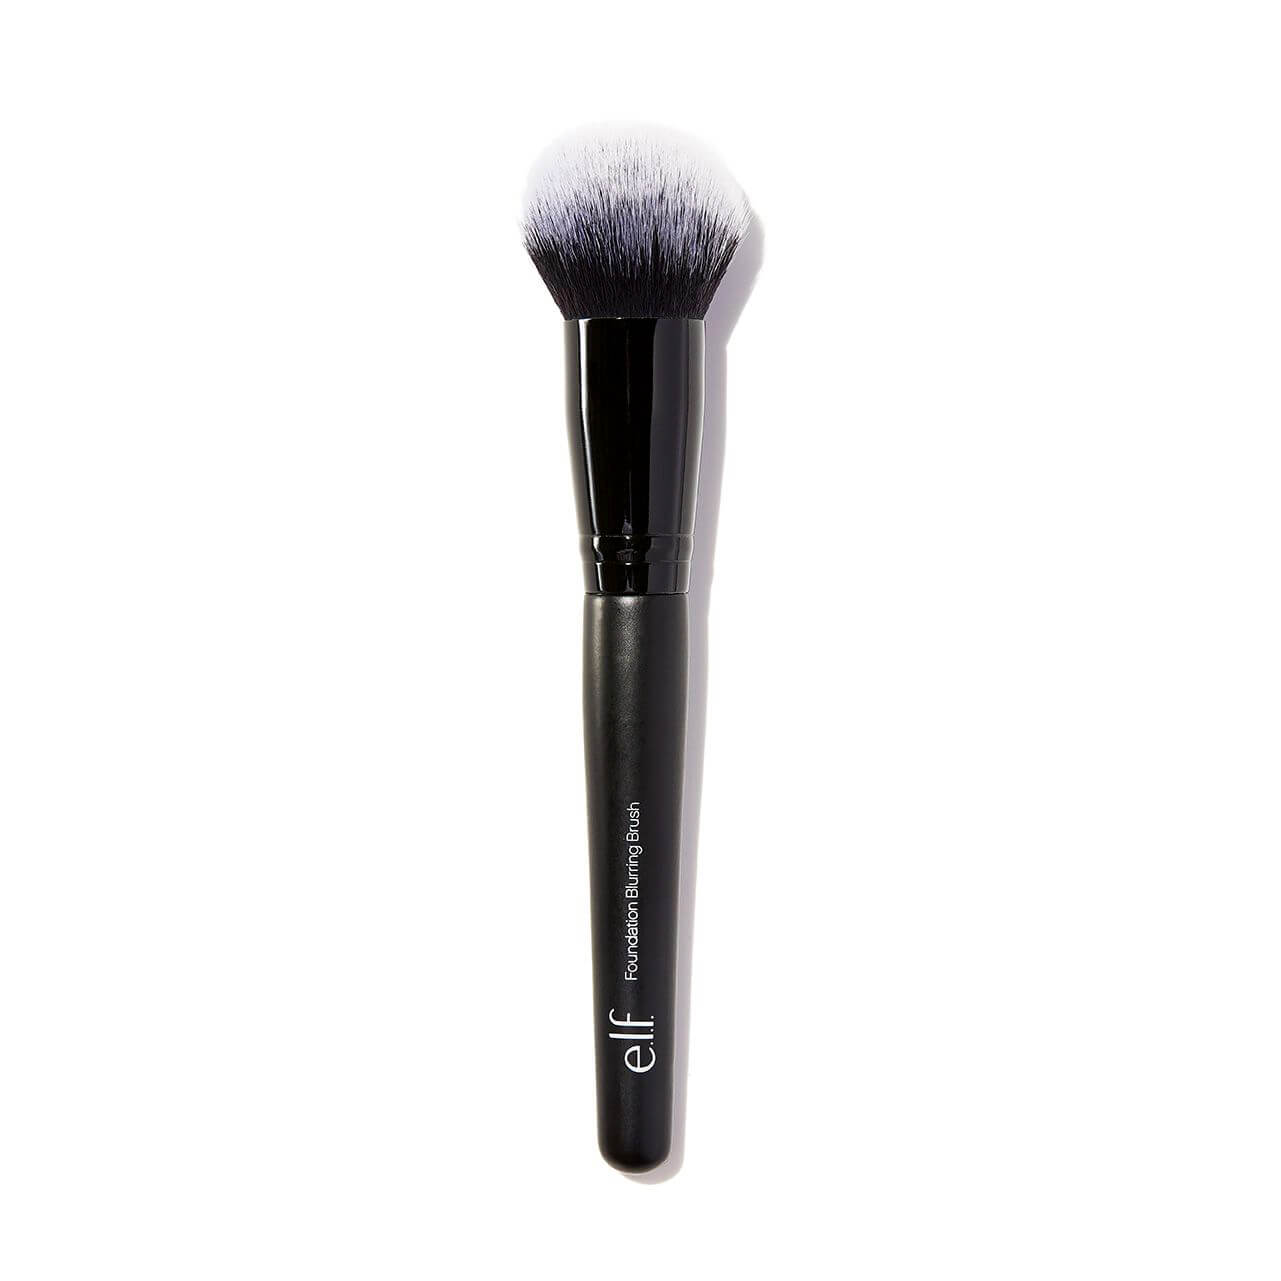 ELF Selfie Ready Foundation Brush